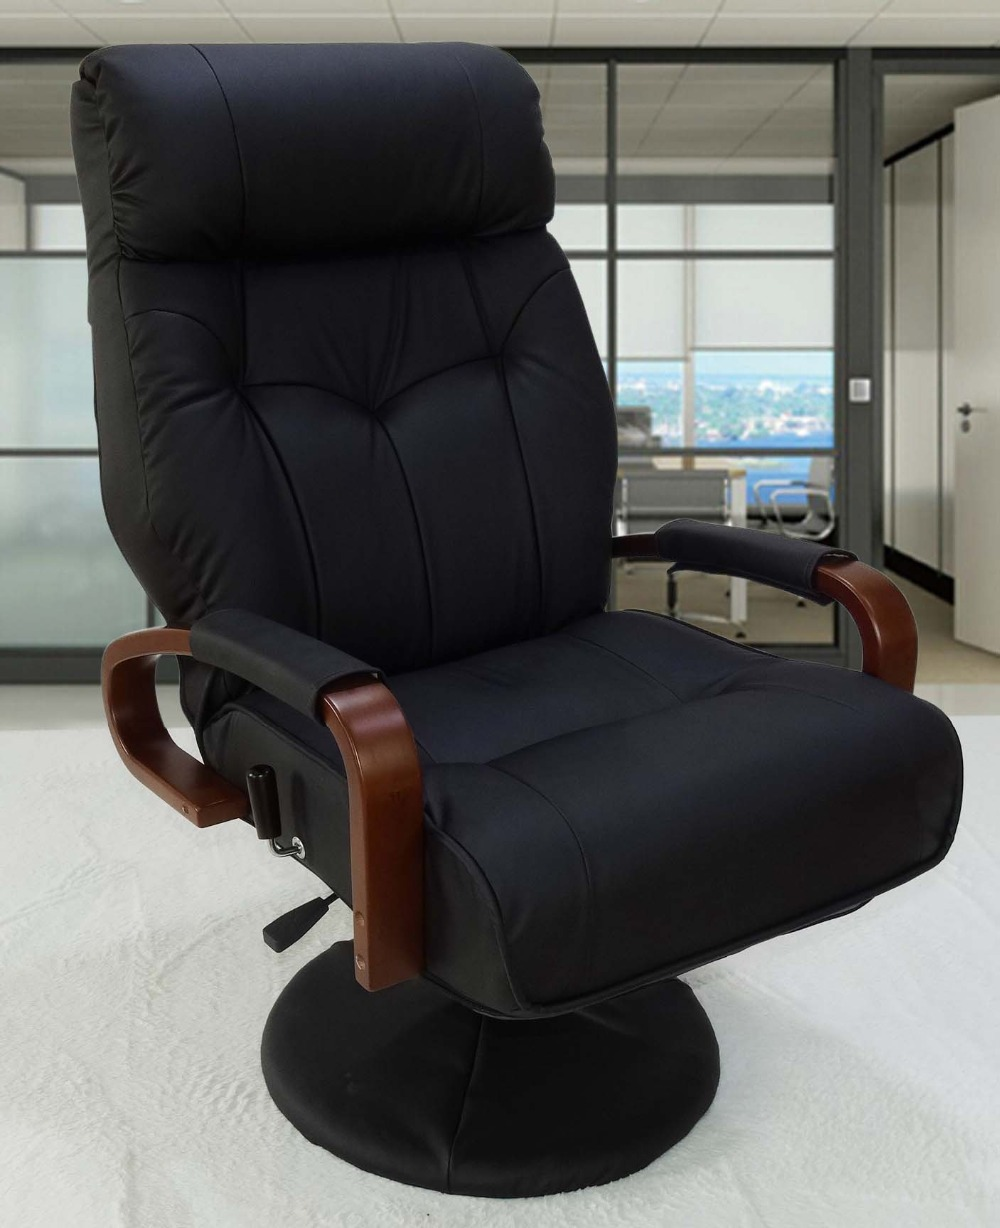 office viva deluxe recliner executive with co bonded leather amazon pcok chair reclining chairs com